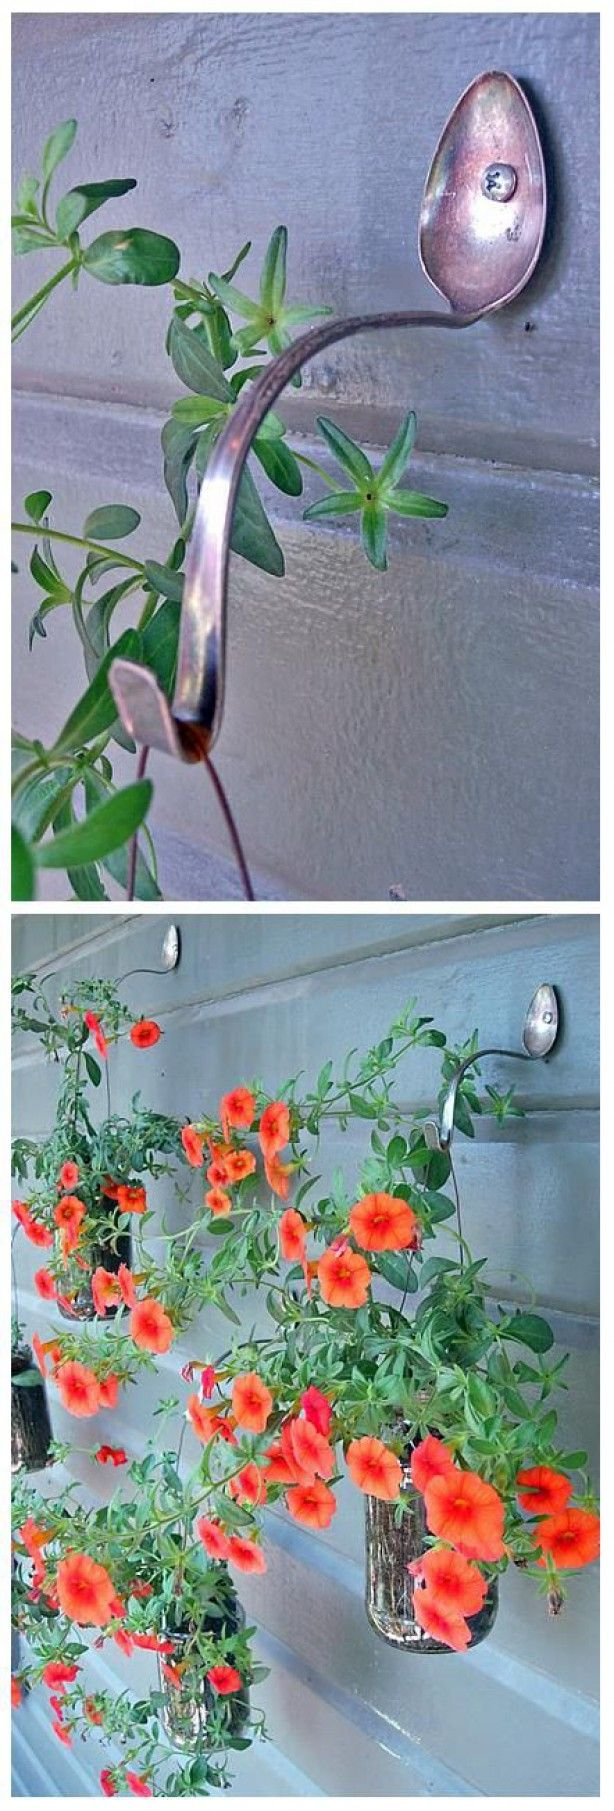 Recycle old spoons to hang your hanging baskets! // Cute idea selected by MommyInTheCity.nl